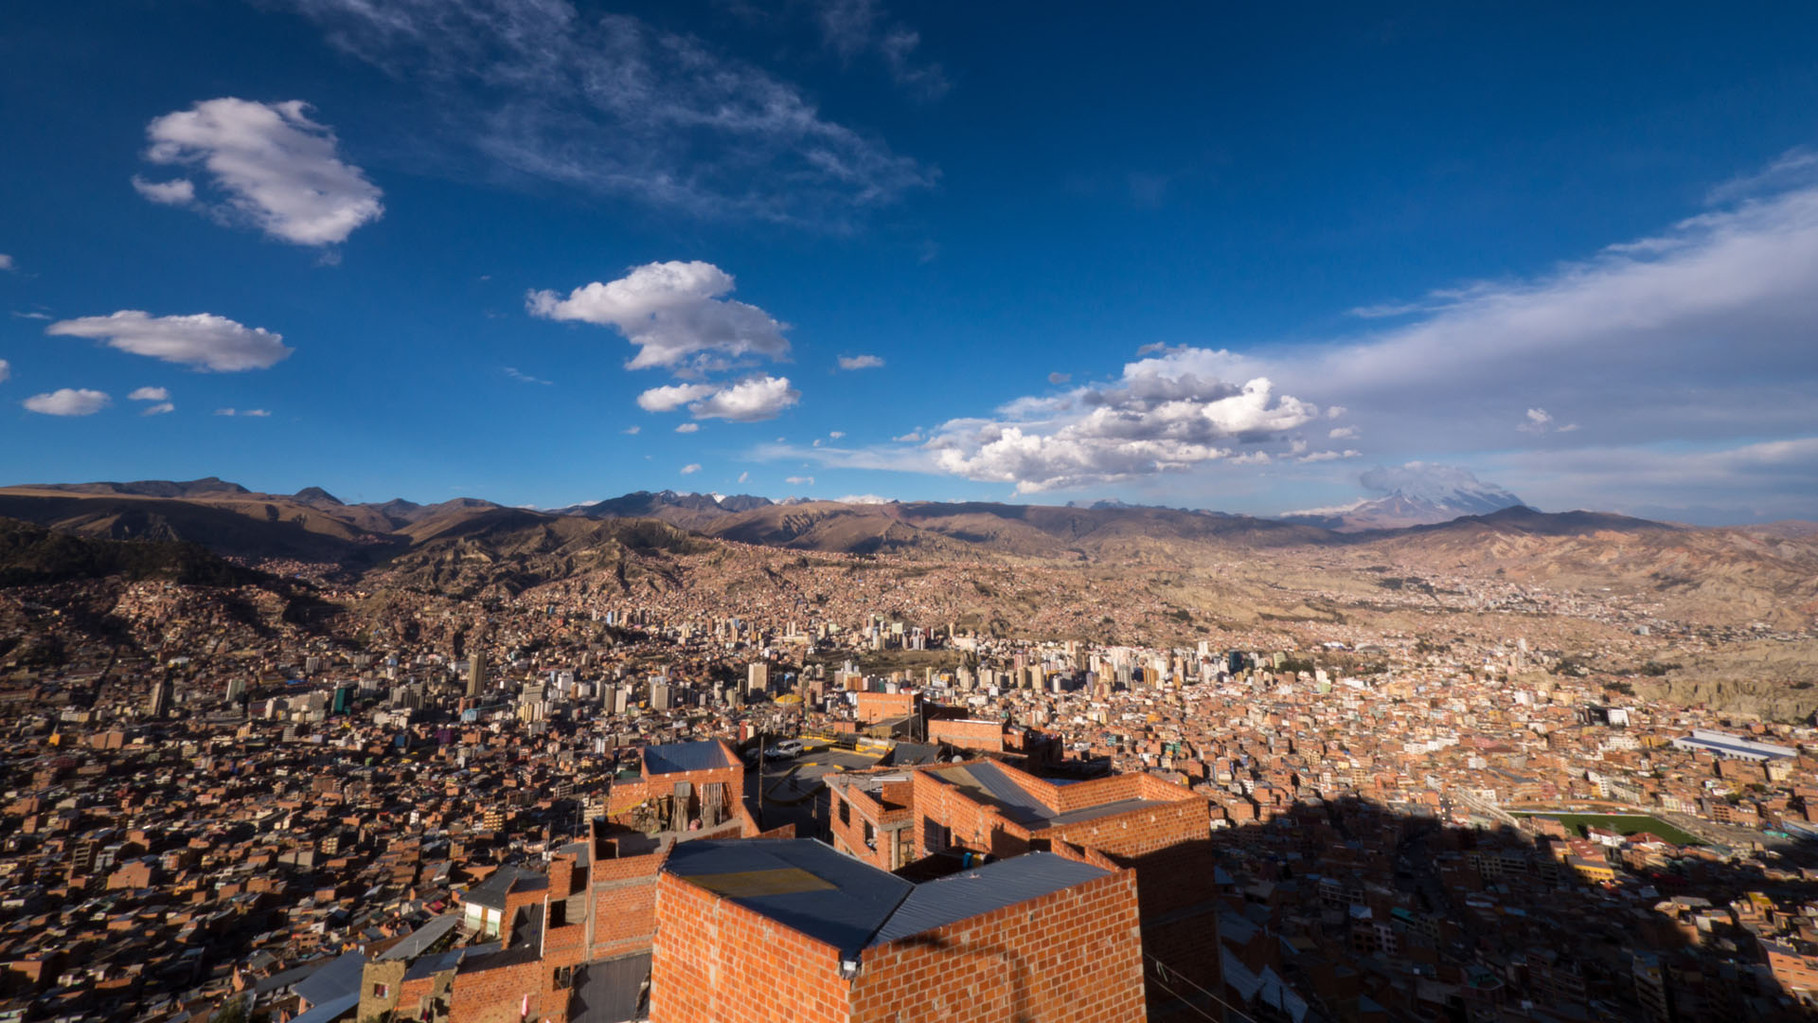 La Paz, mount Illimani looming in the background